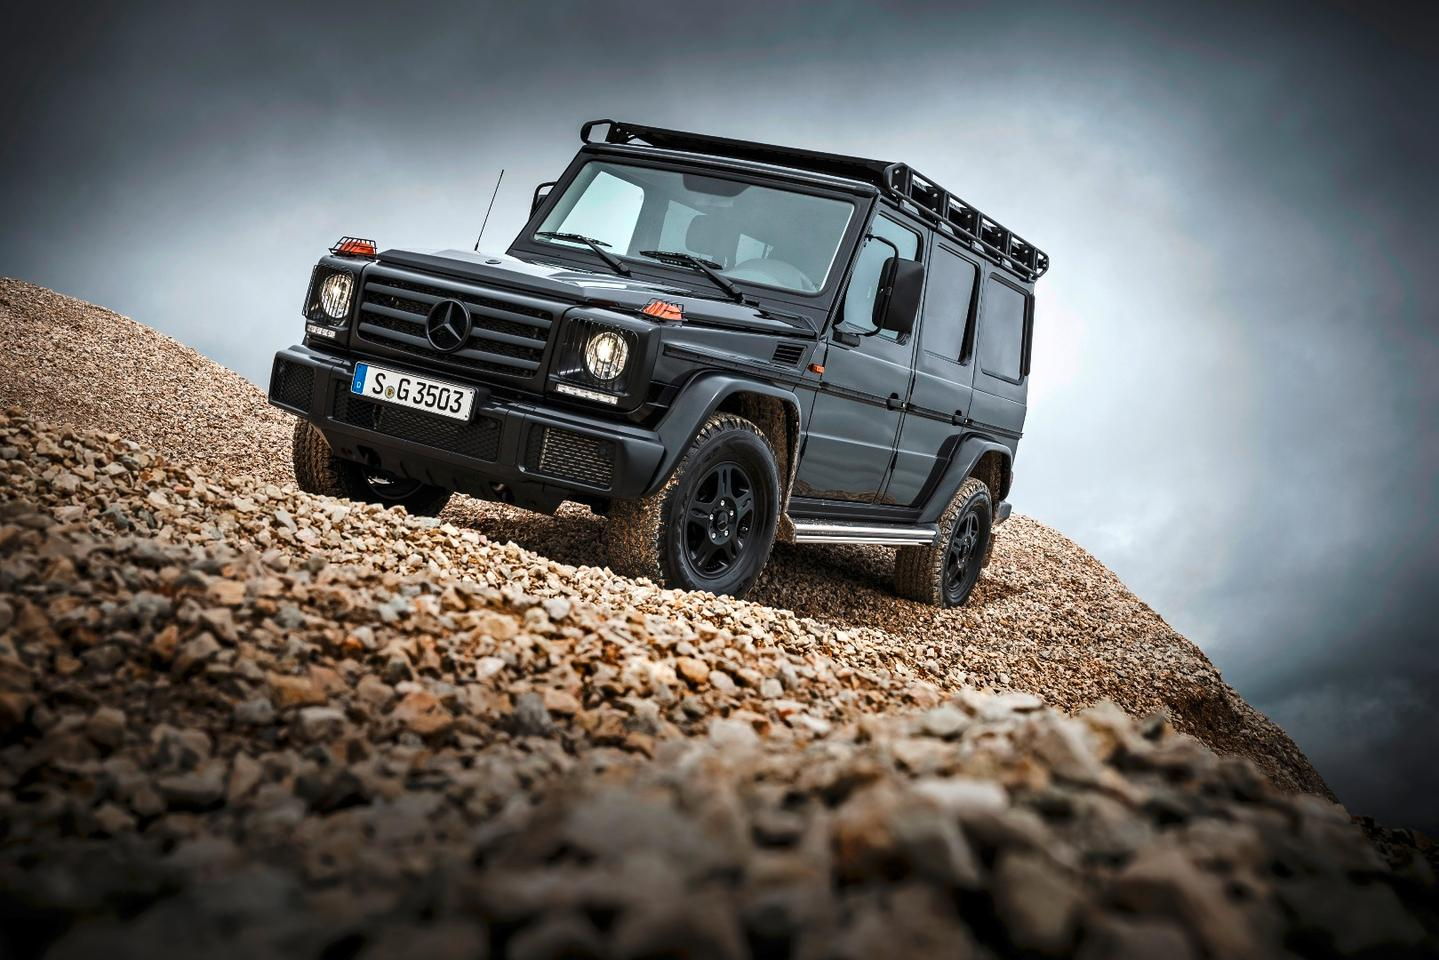 The G-Class' basic shape is largely unchanged since its debut over 35 years ago